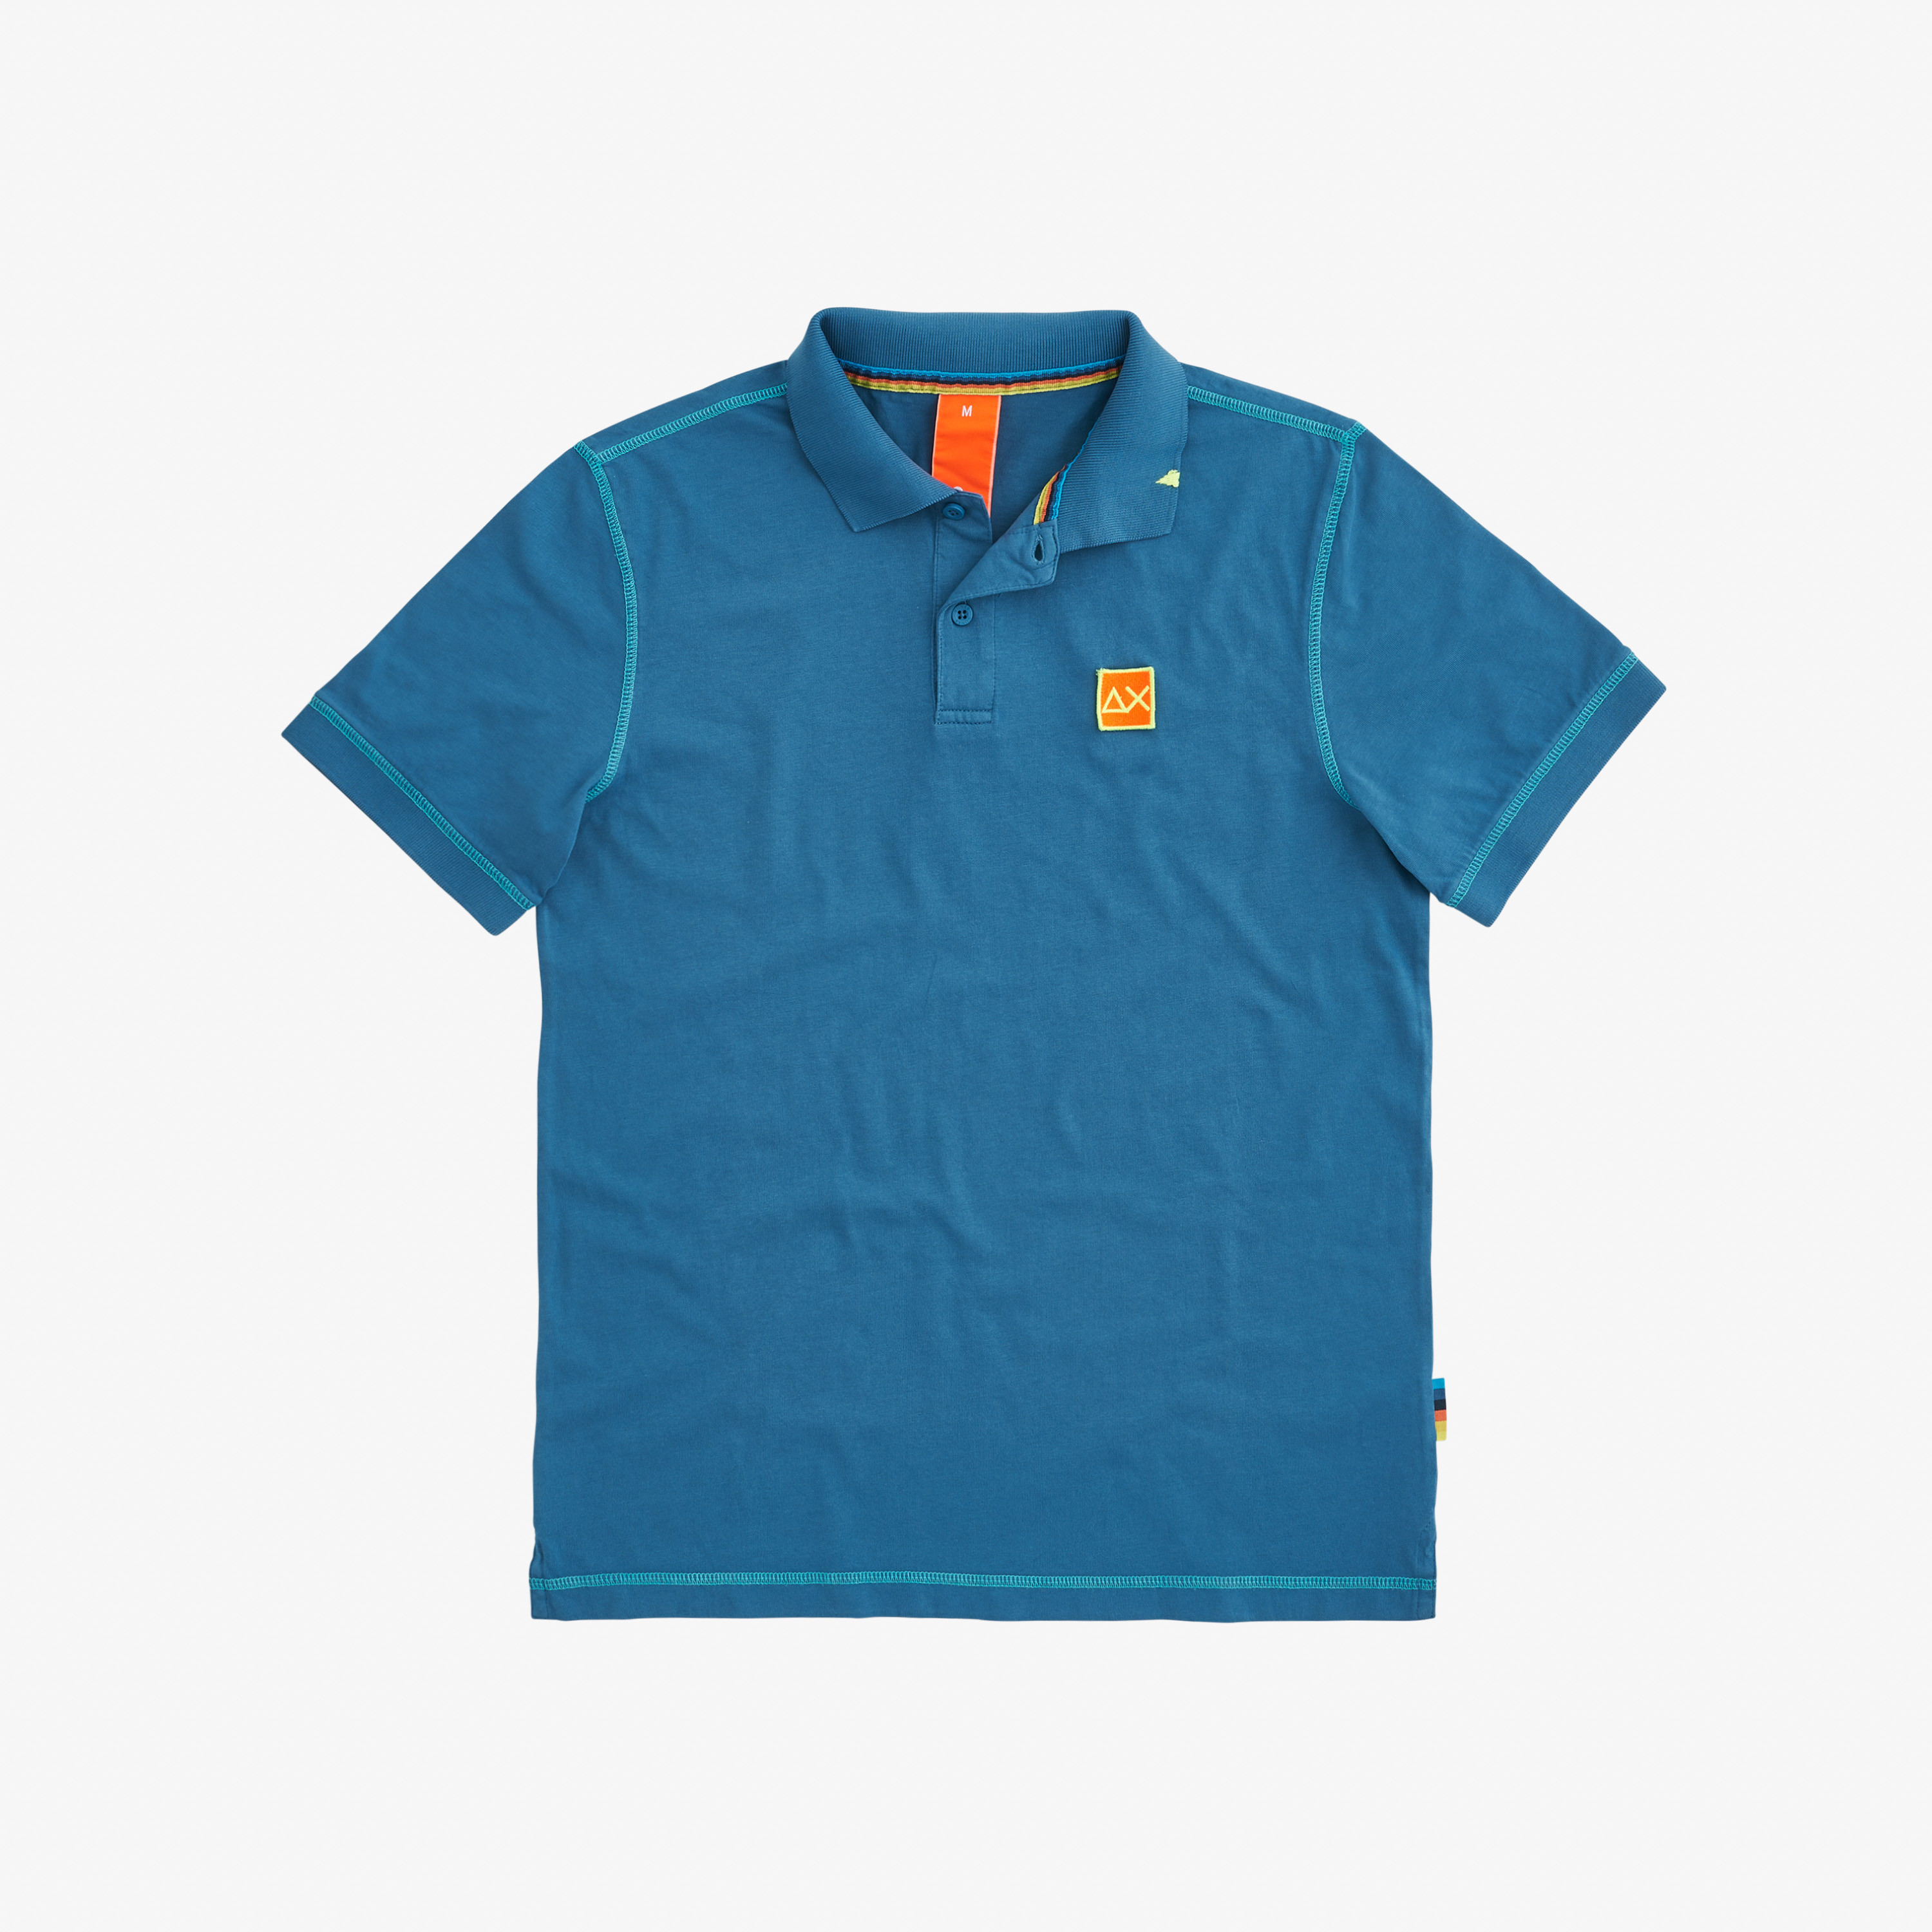 POLO COLD DYE CONTRAST STITCHING DEEP BLUE